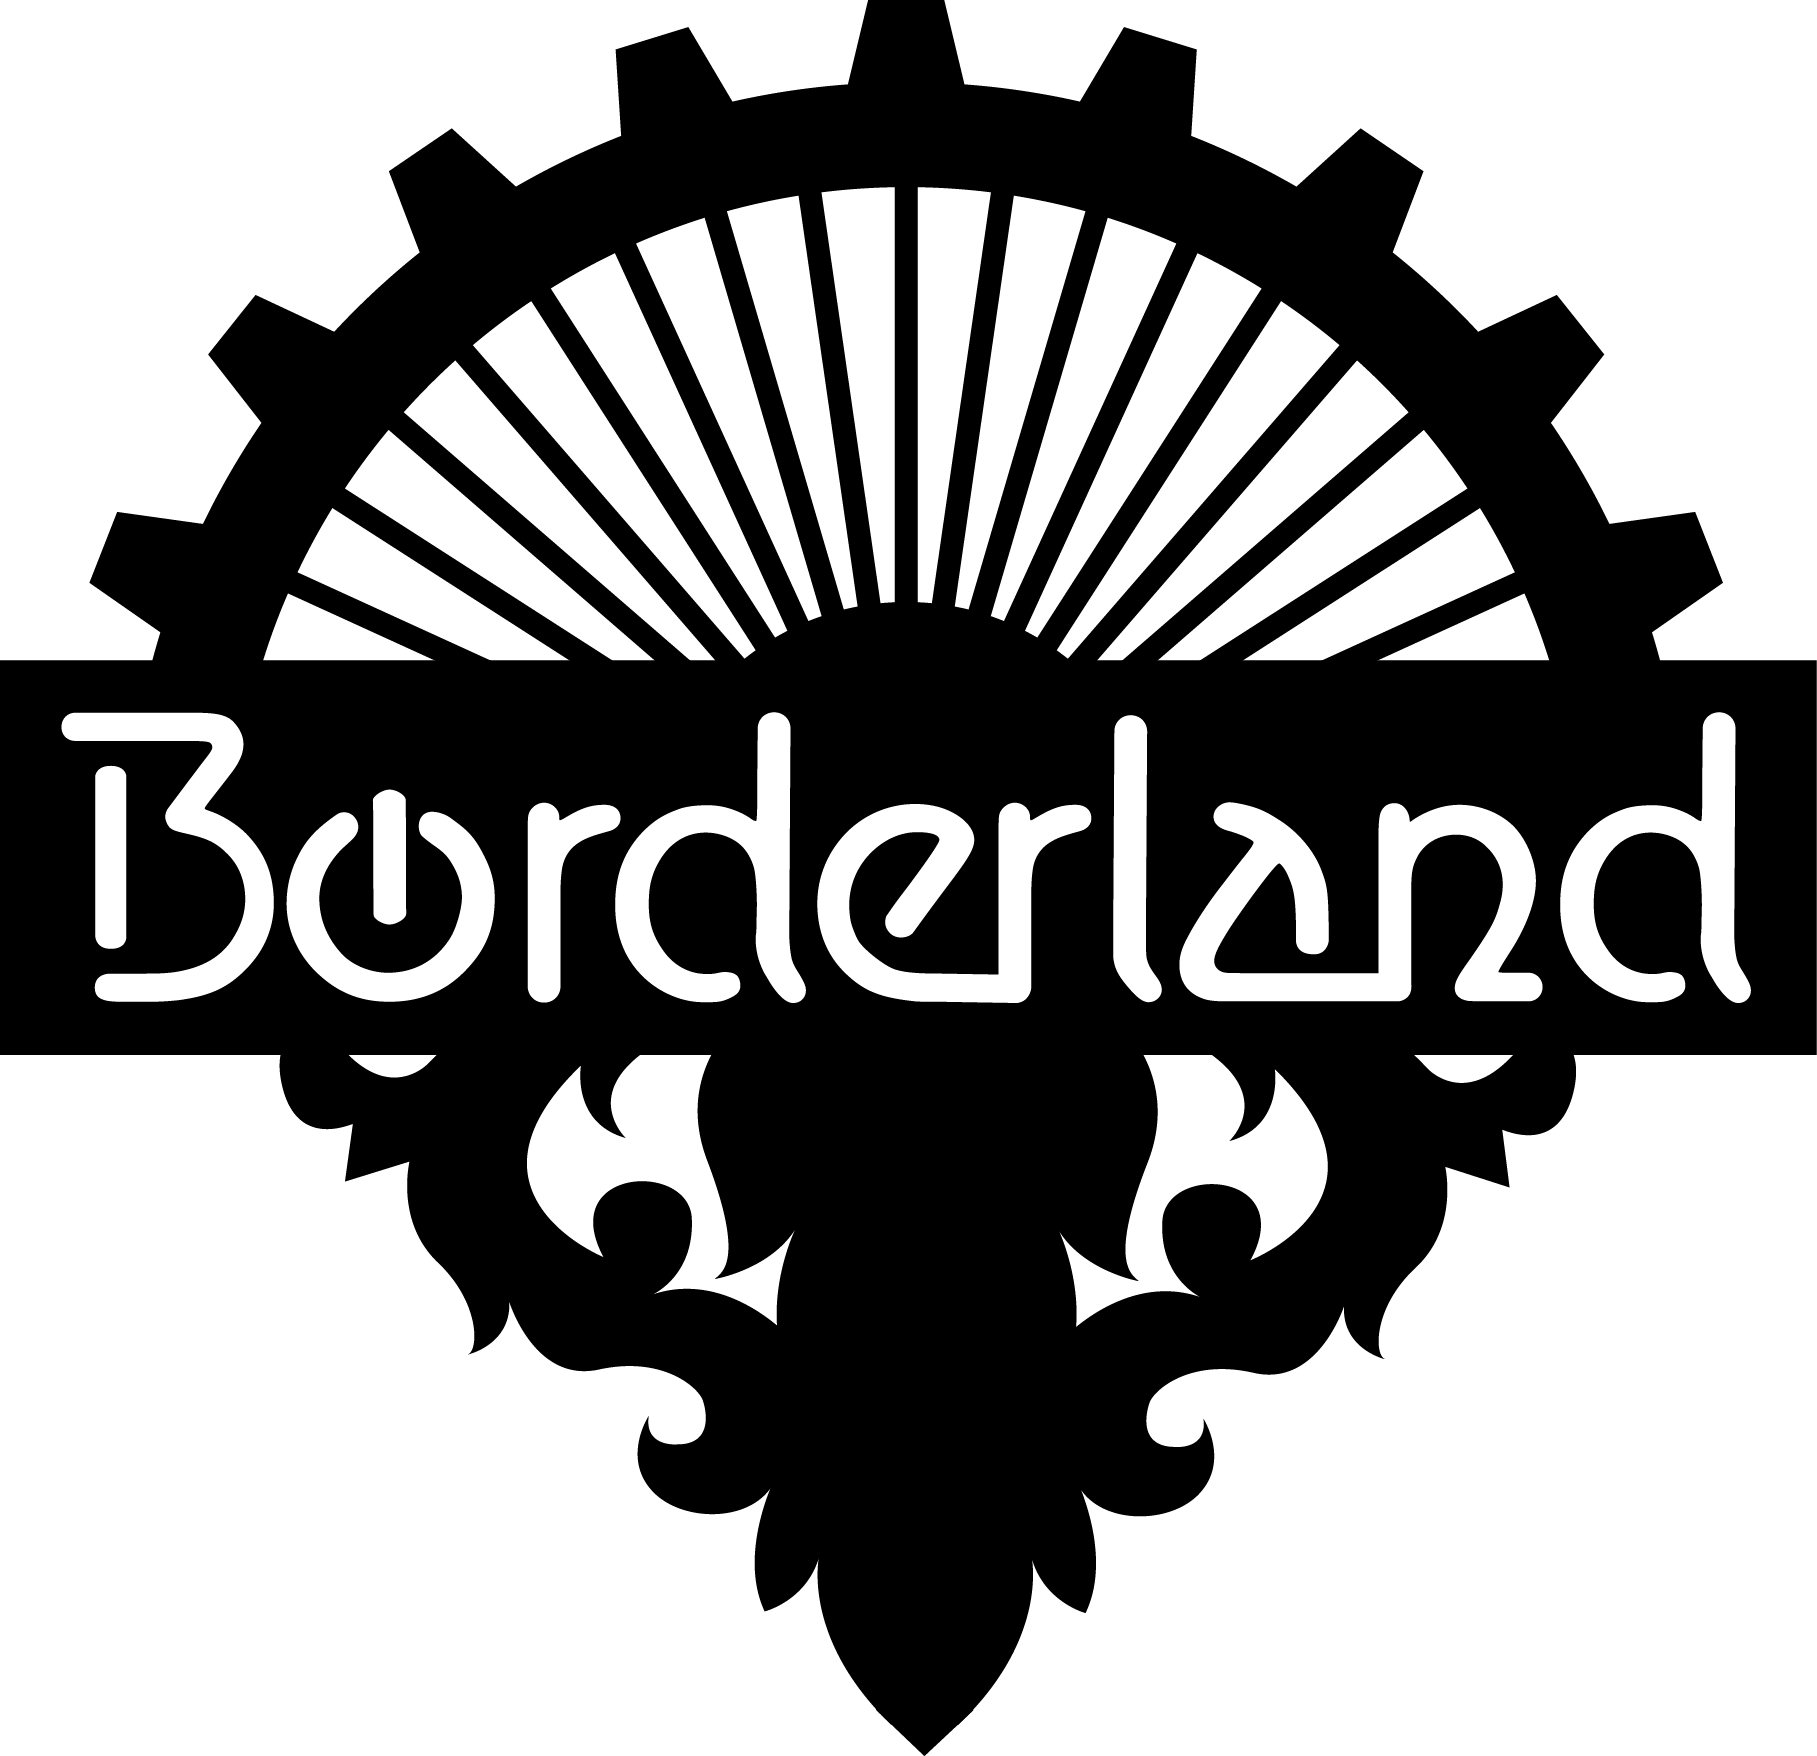 Borderland® - Borderland® is born of the need to break stereotypes and standards by elevating the creative spirit to a level where there are no limits, thus providing unique and unforgettable experiences for anyone who has the boldness to embark on this new world of adventure with us.  It is a registered national brand that aims to unite areas such as event animation, photography, scenery and design in a perfect balance.